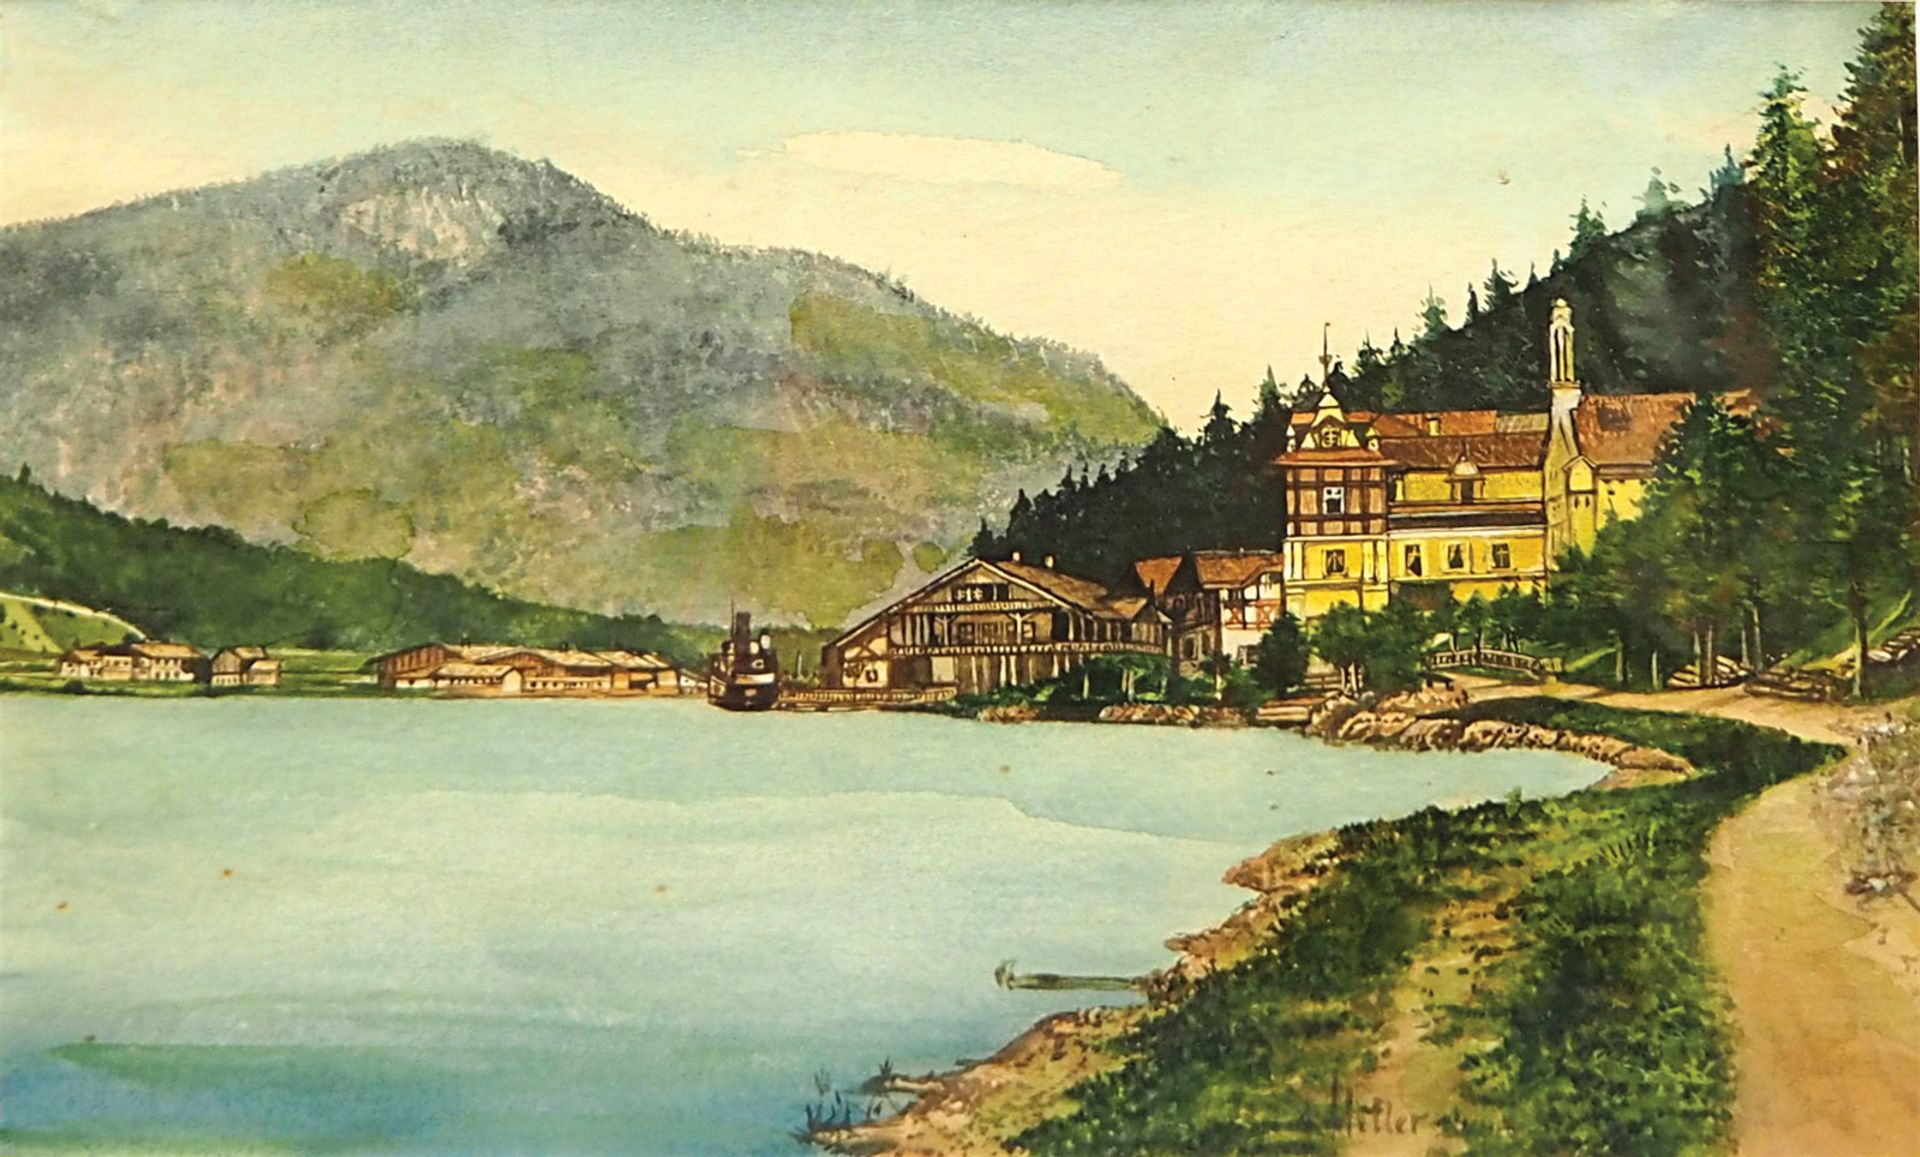 Village by a Mountain Lake, signed A. Hitler, was not among the works seized from Weidler as suspected forgeries. It is still seeking a buyer. Auktionhaus Weidler